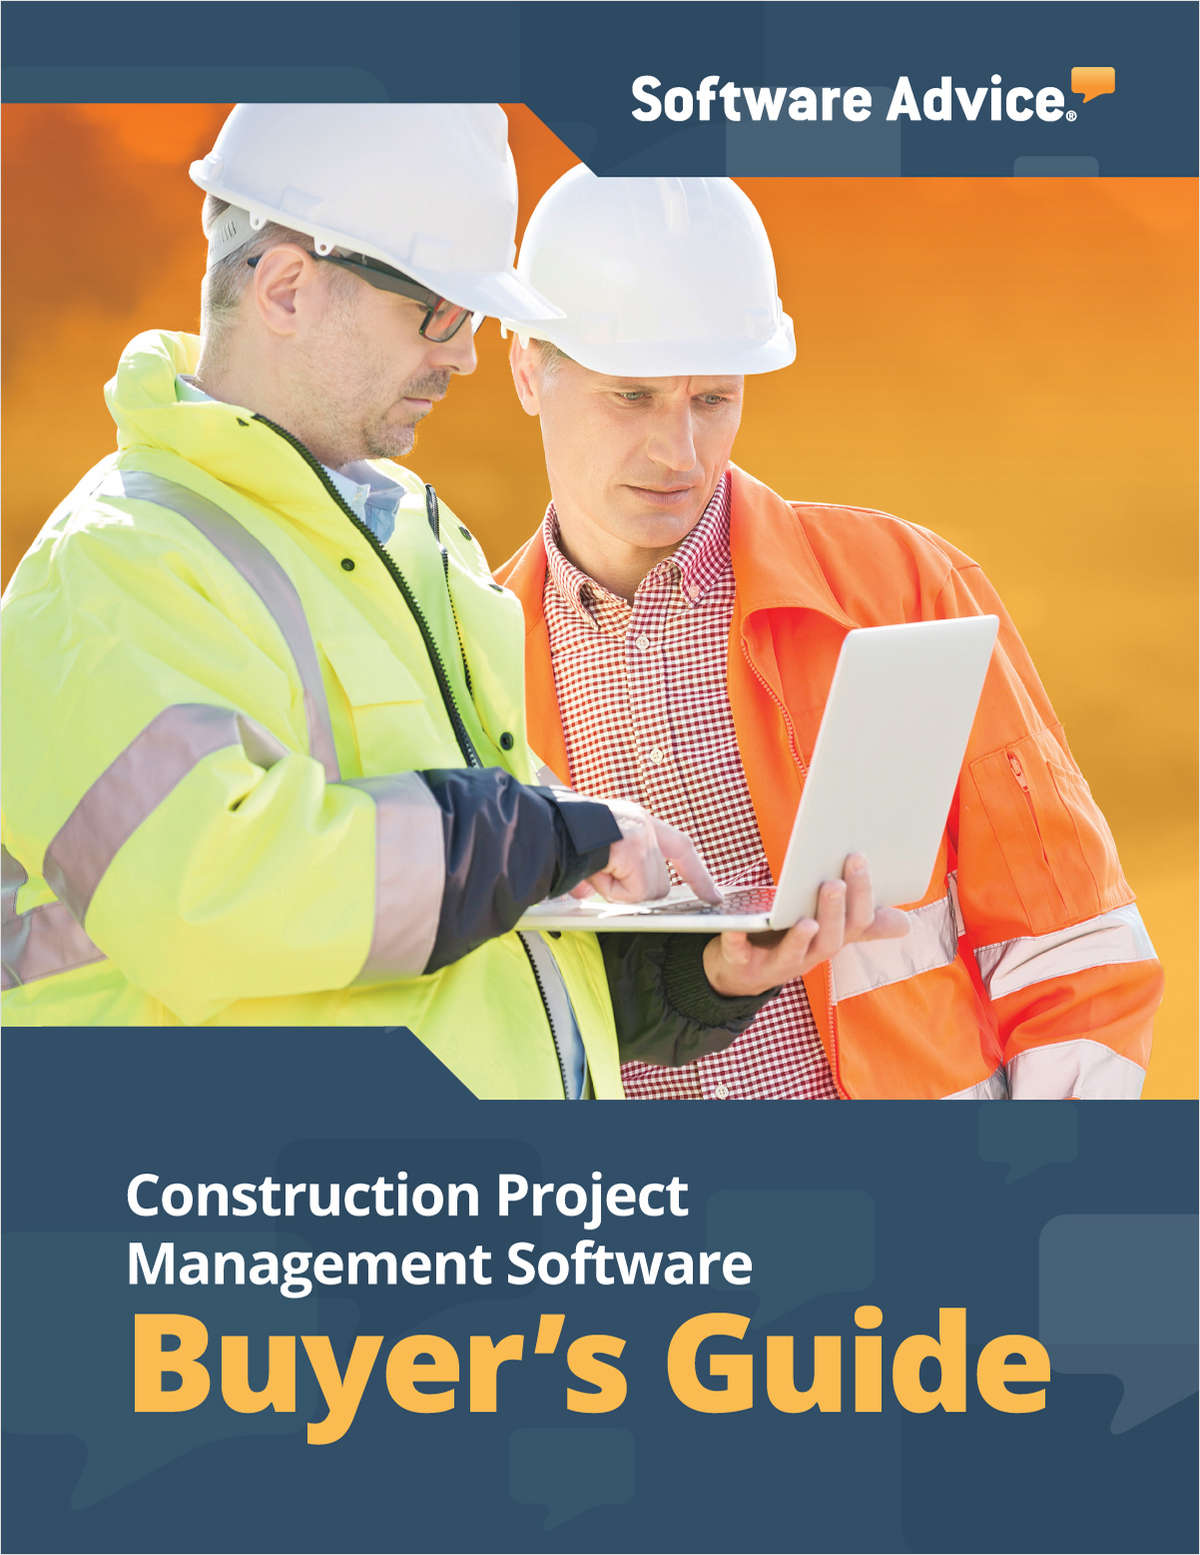 Software Advice's Guide to Buying Construction Project Management Software in 2019